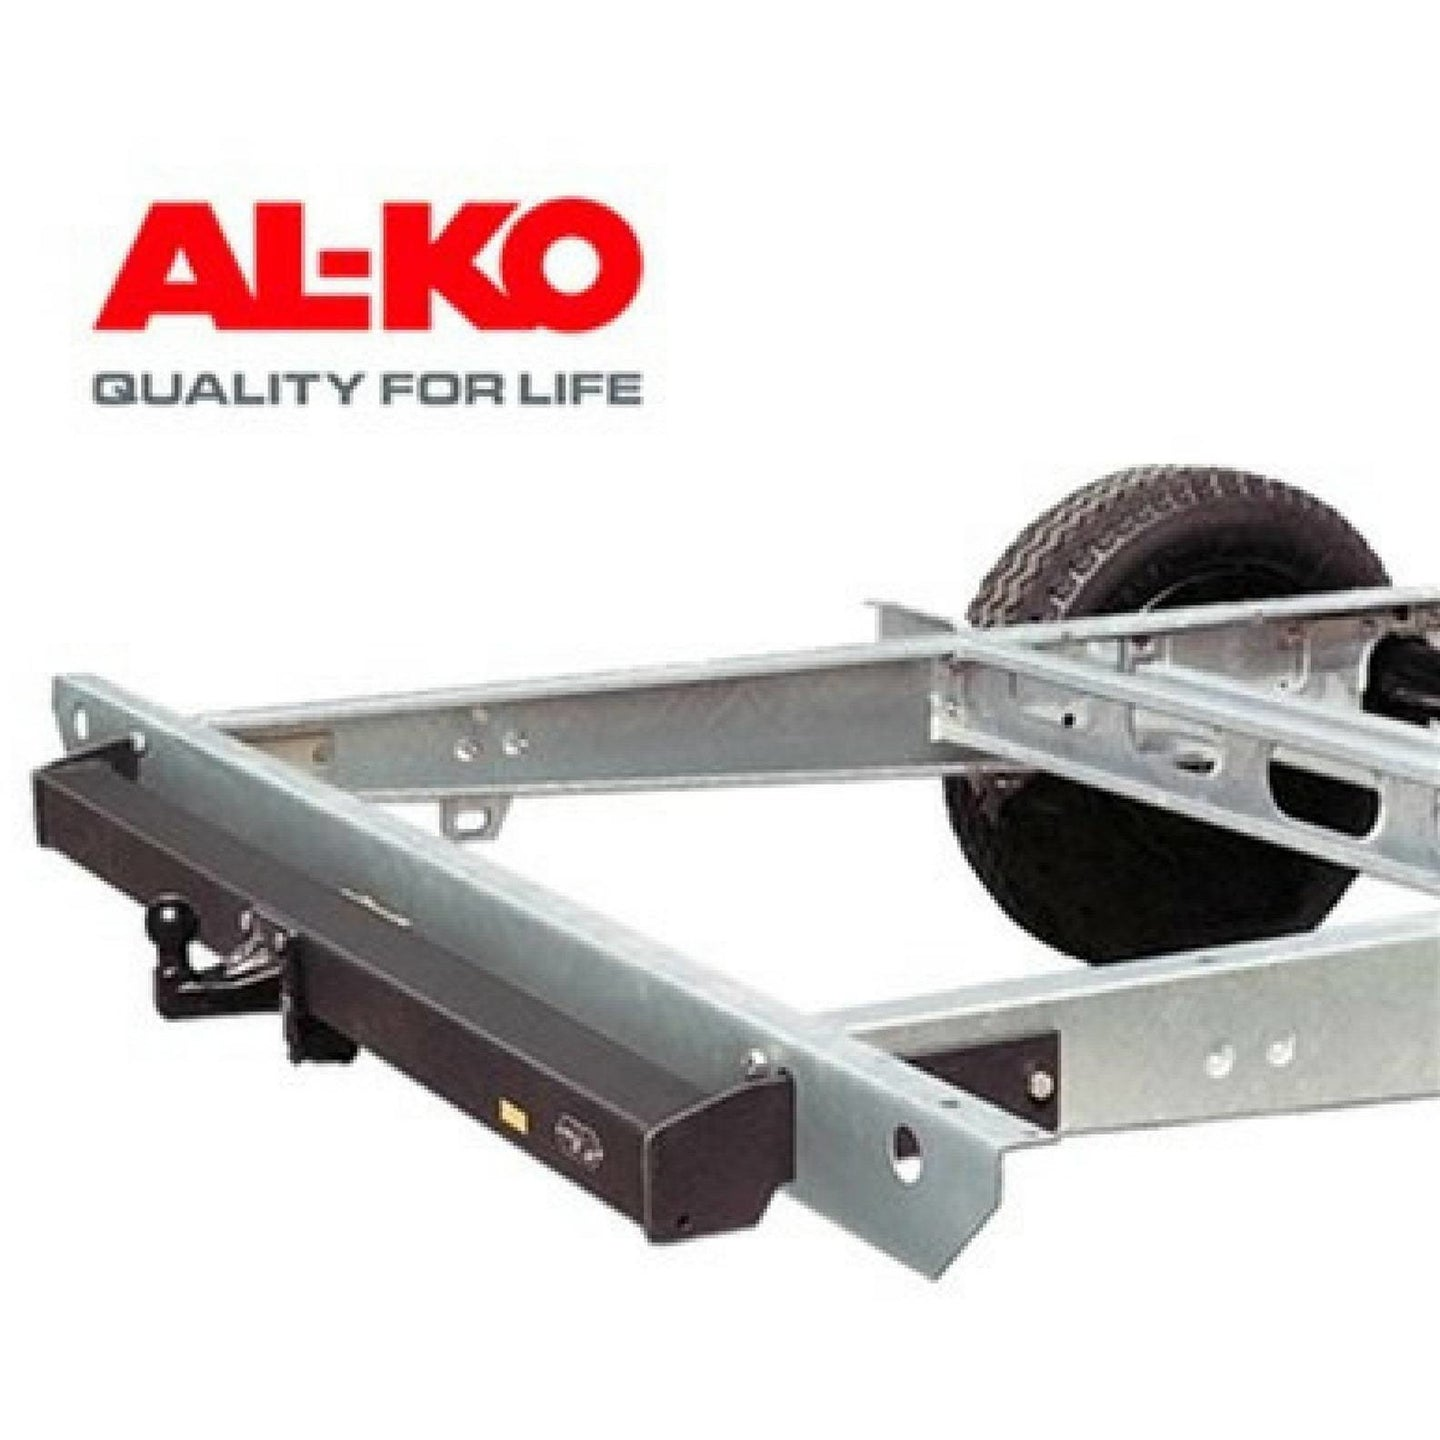 ALKO Towbar Assembly (261803) - Quality Caravan Awnings